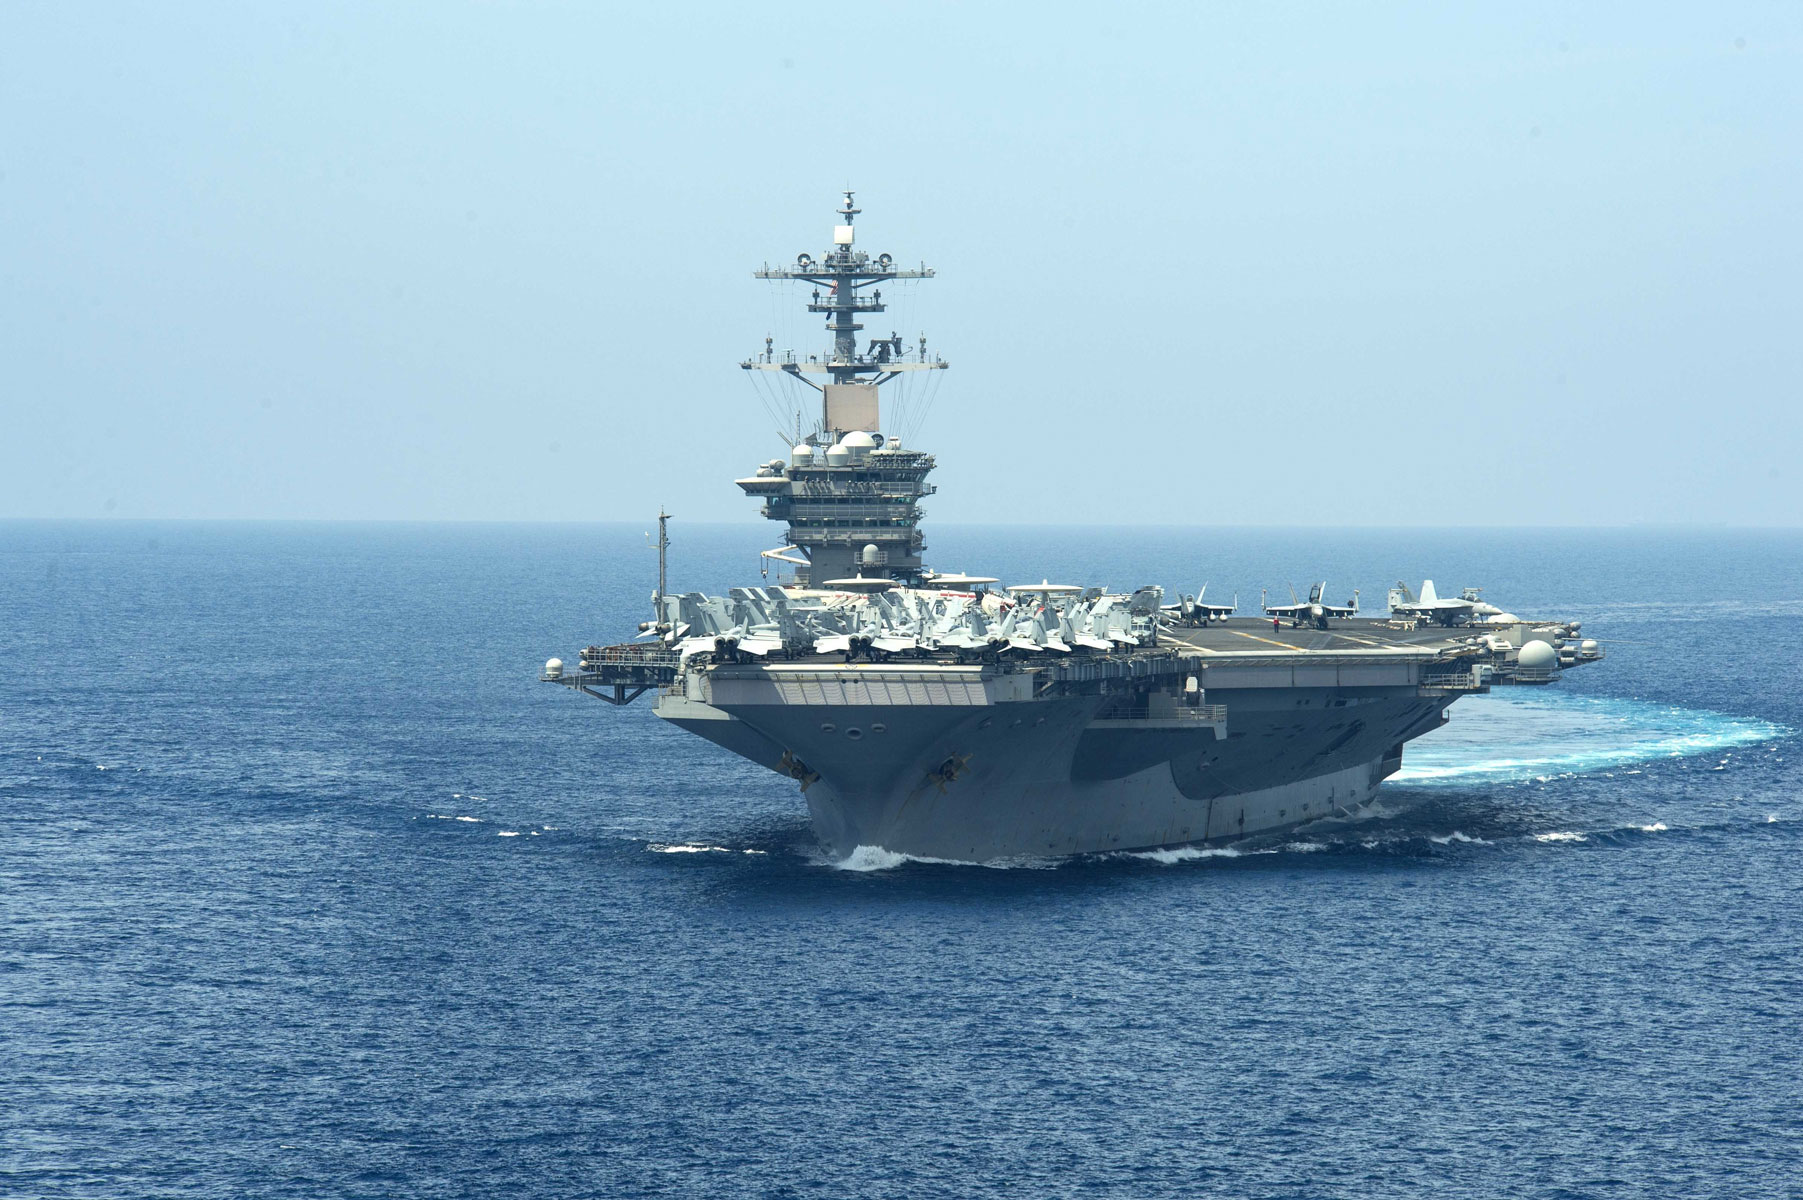 USS Theodore Roosevelt maneuvers and approaches Military Sealift Command dry cargo and ammunition ship USNS Amelia Earhart in the Western Pacific.